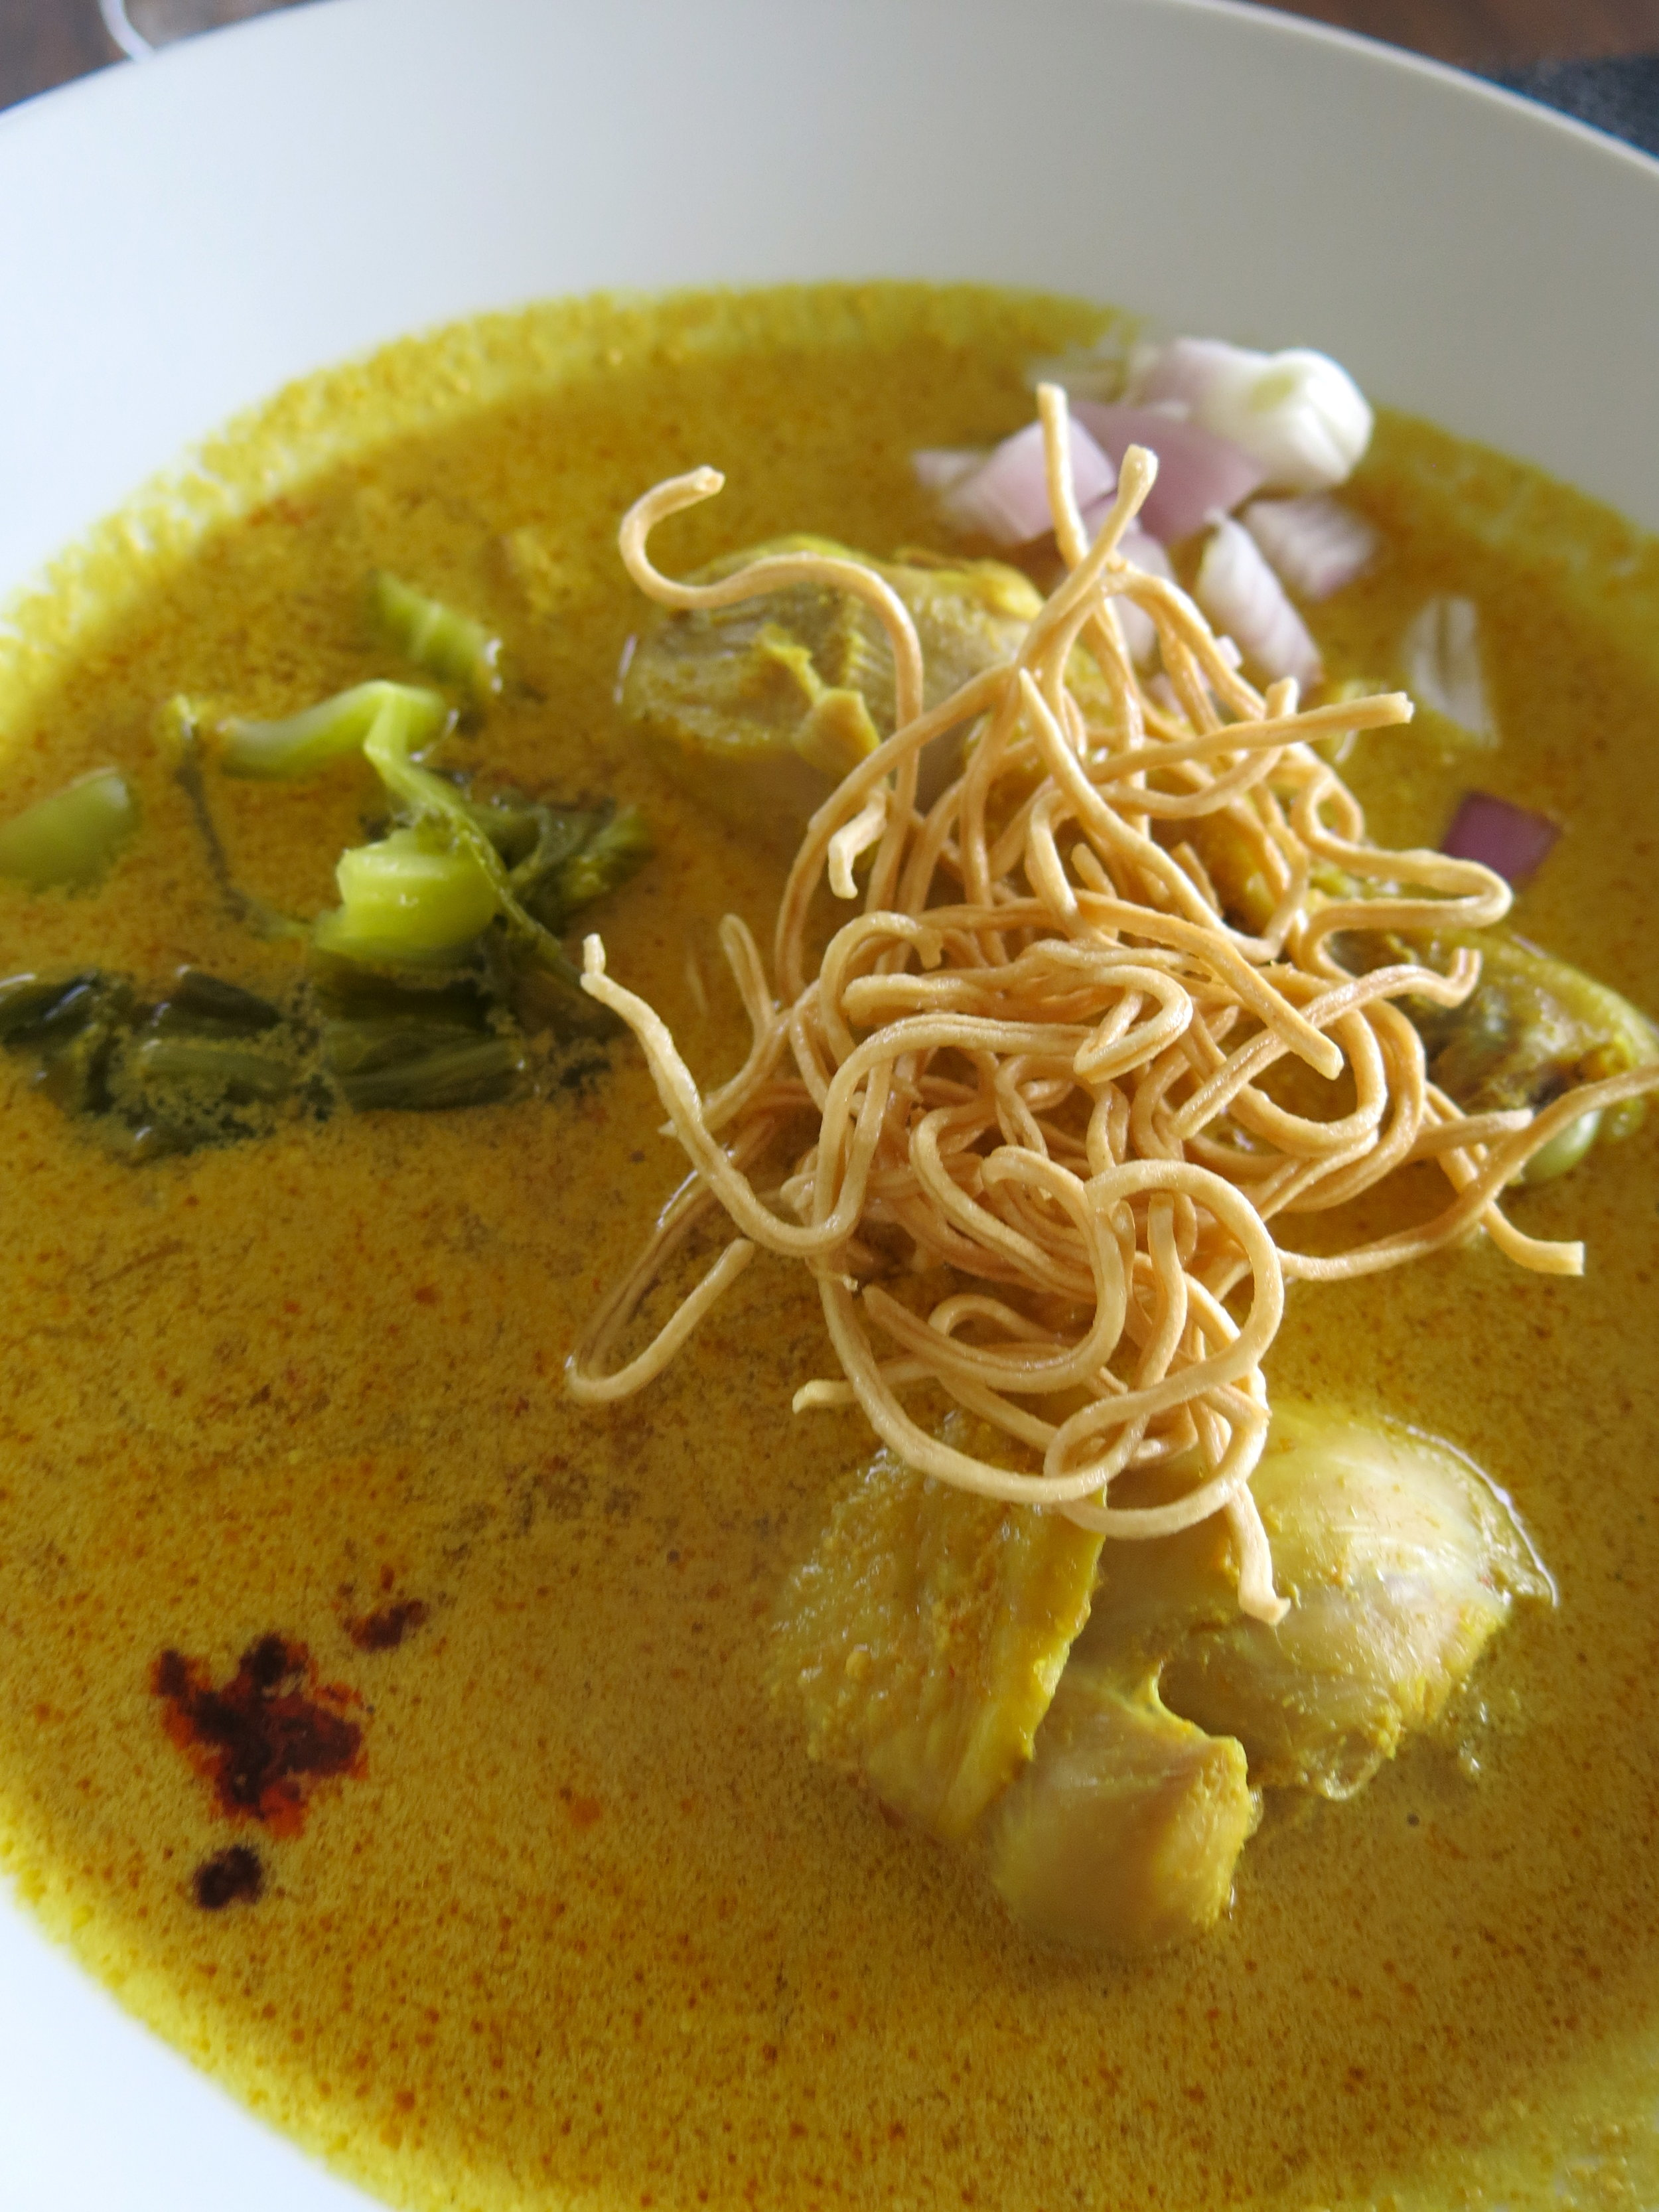 Khao Soi contains noodles and chicken drumsticks